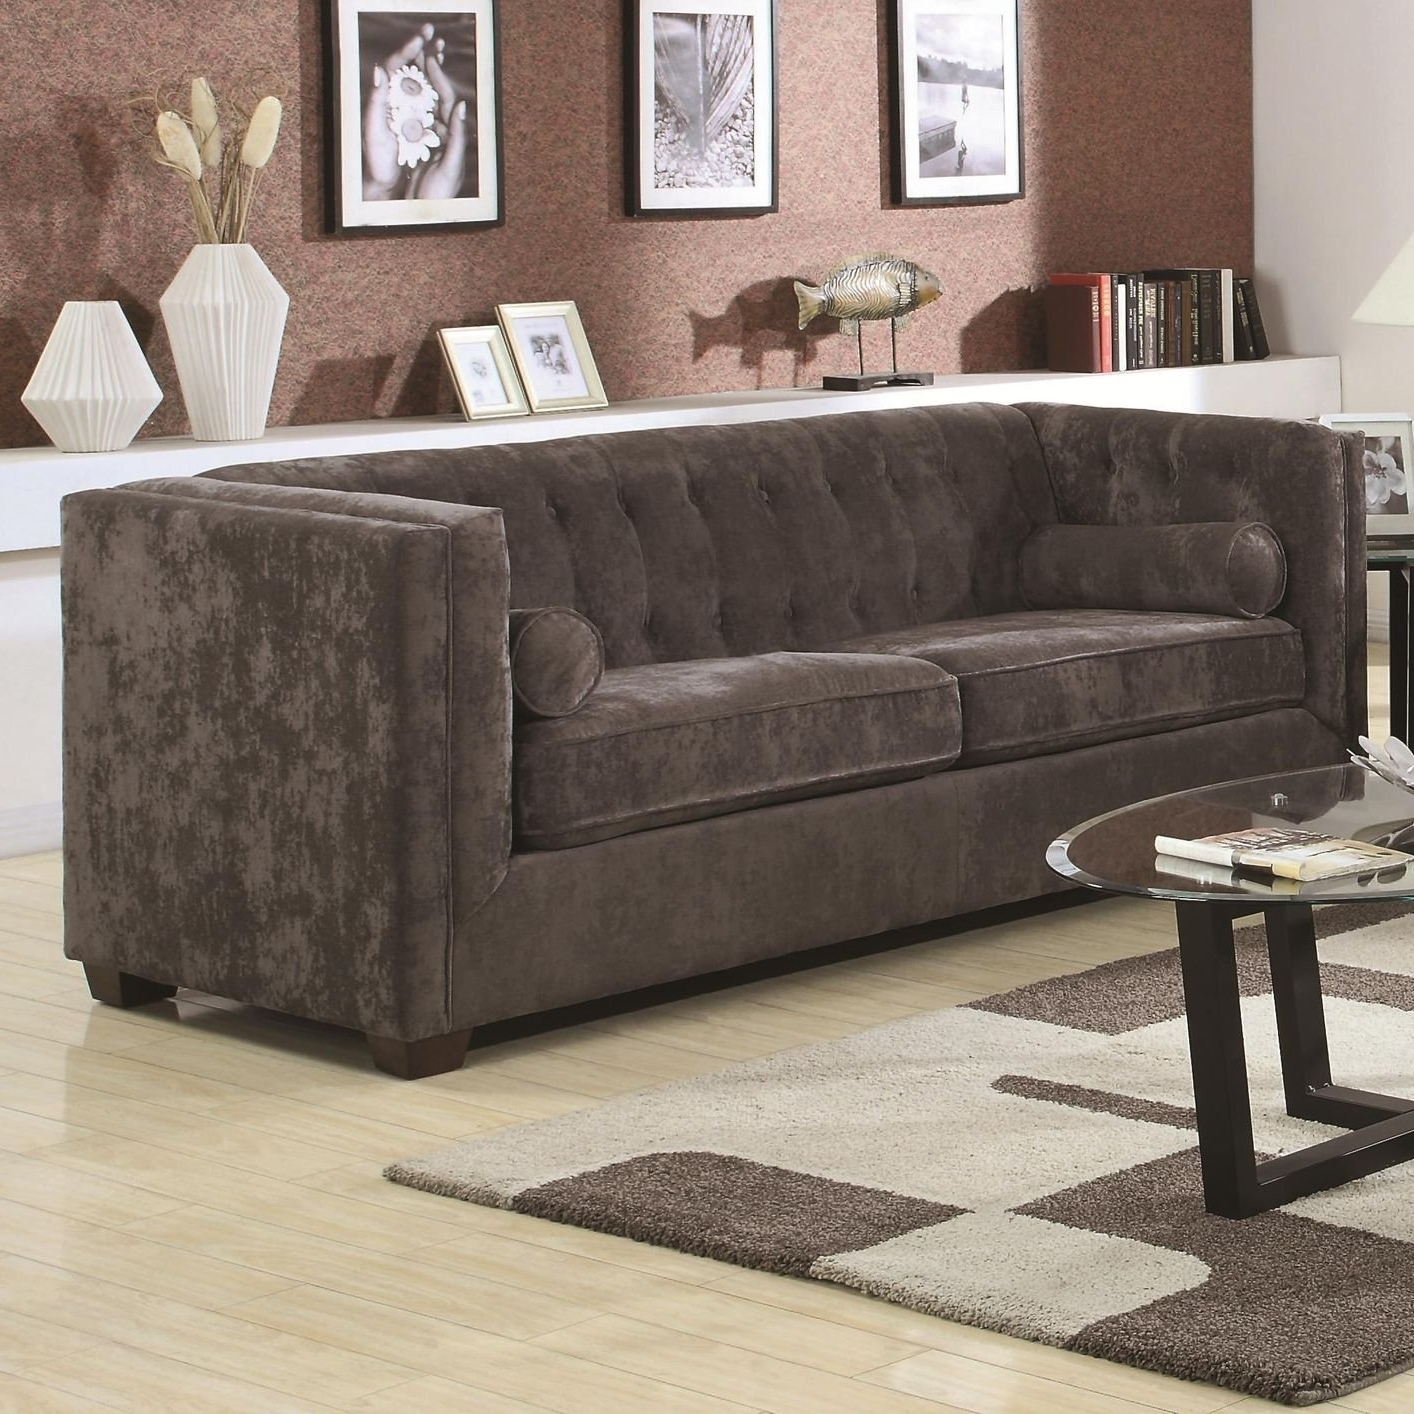 2018 Furniture : Klaussner Alexis Sofa Sofa Set At Cheap Rate In Regarding Dufresne Sectional Sofas (View 6 of 15)